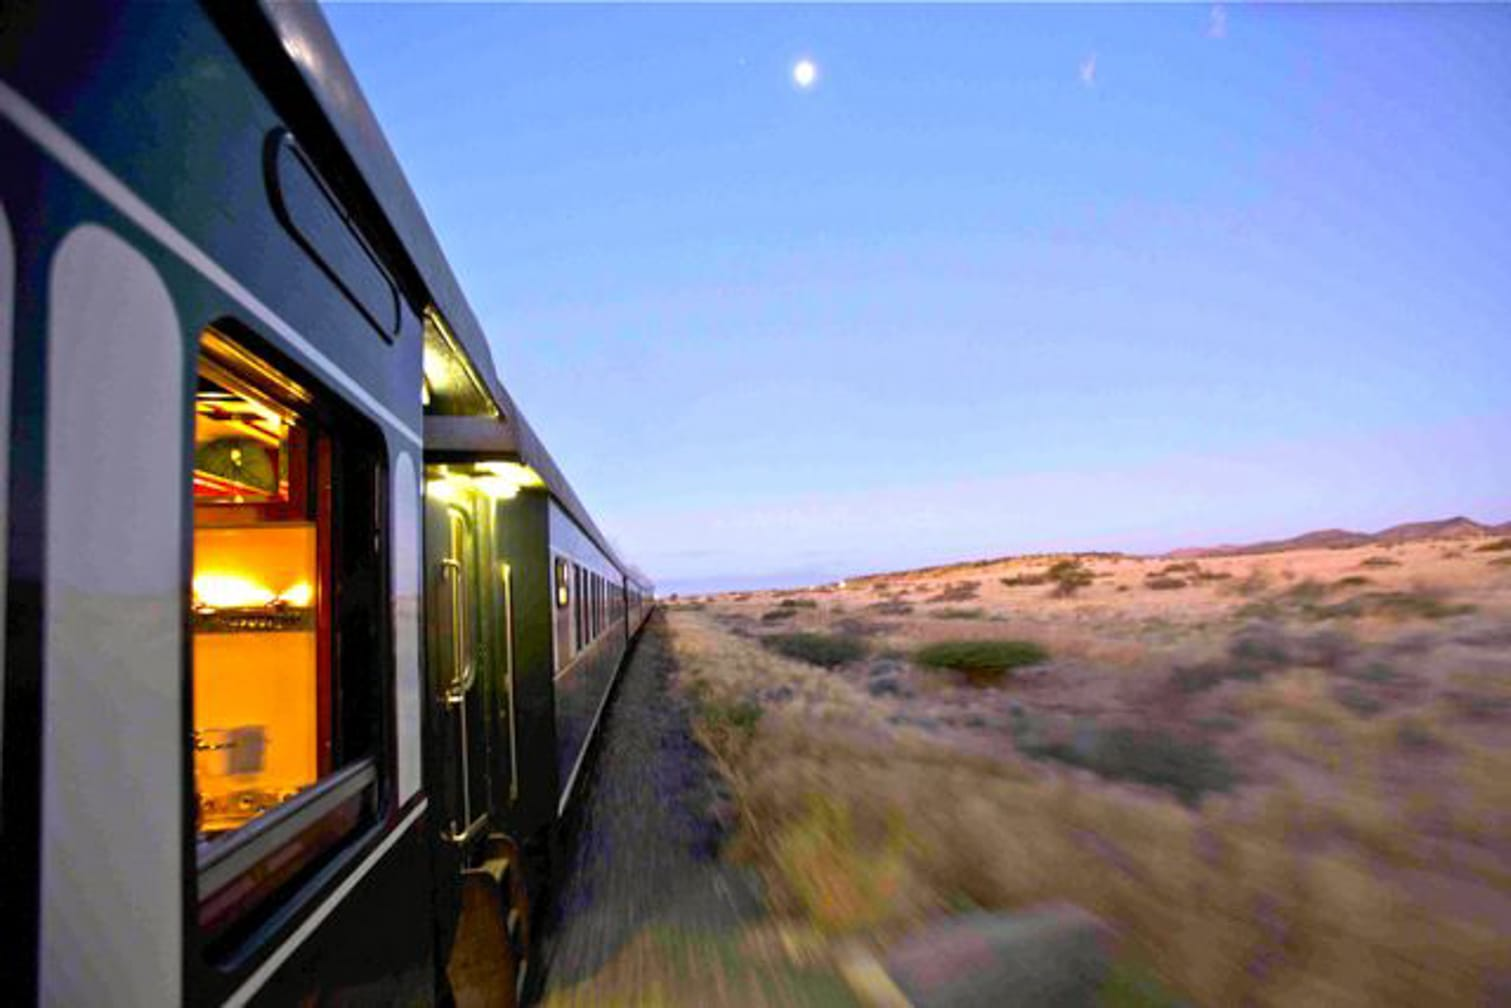 Train on the Namibia Safari by Luxury Train aboard Rovos Rail's Pride of Africa journey